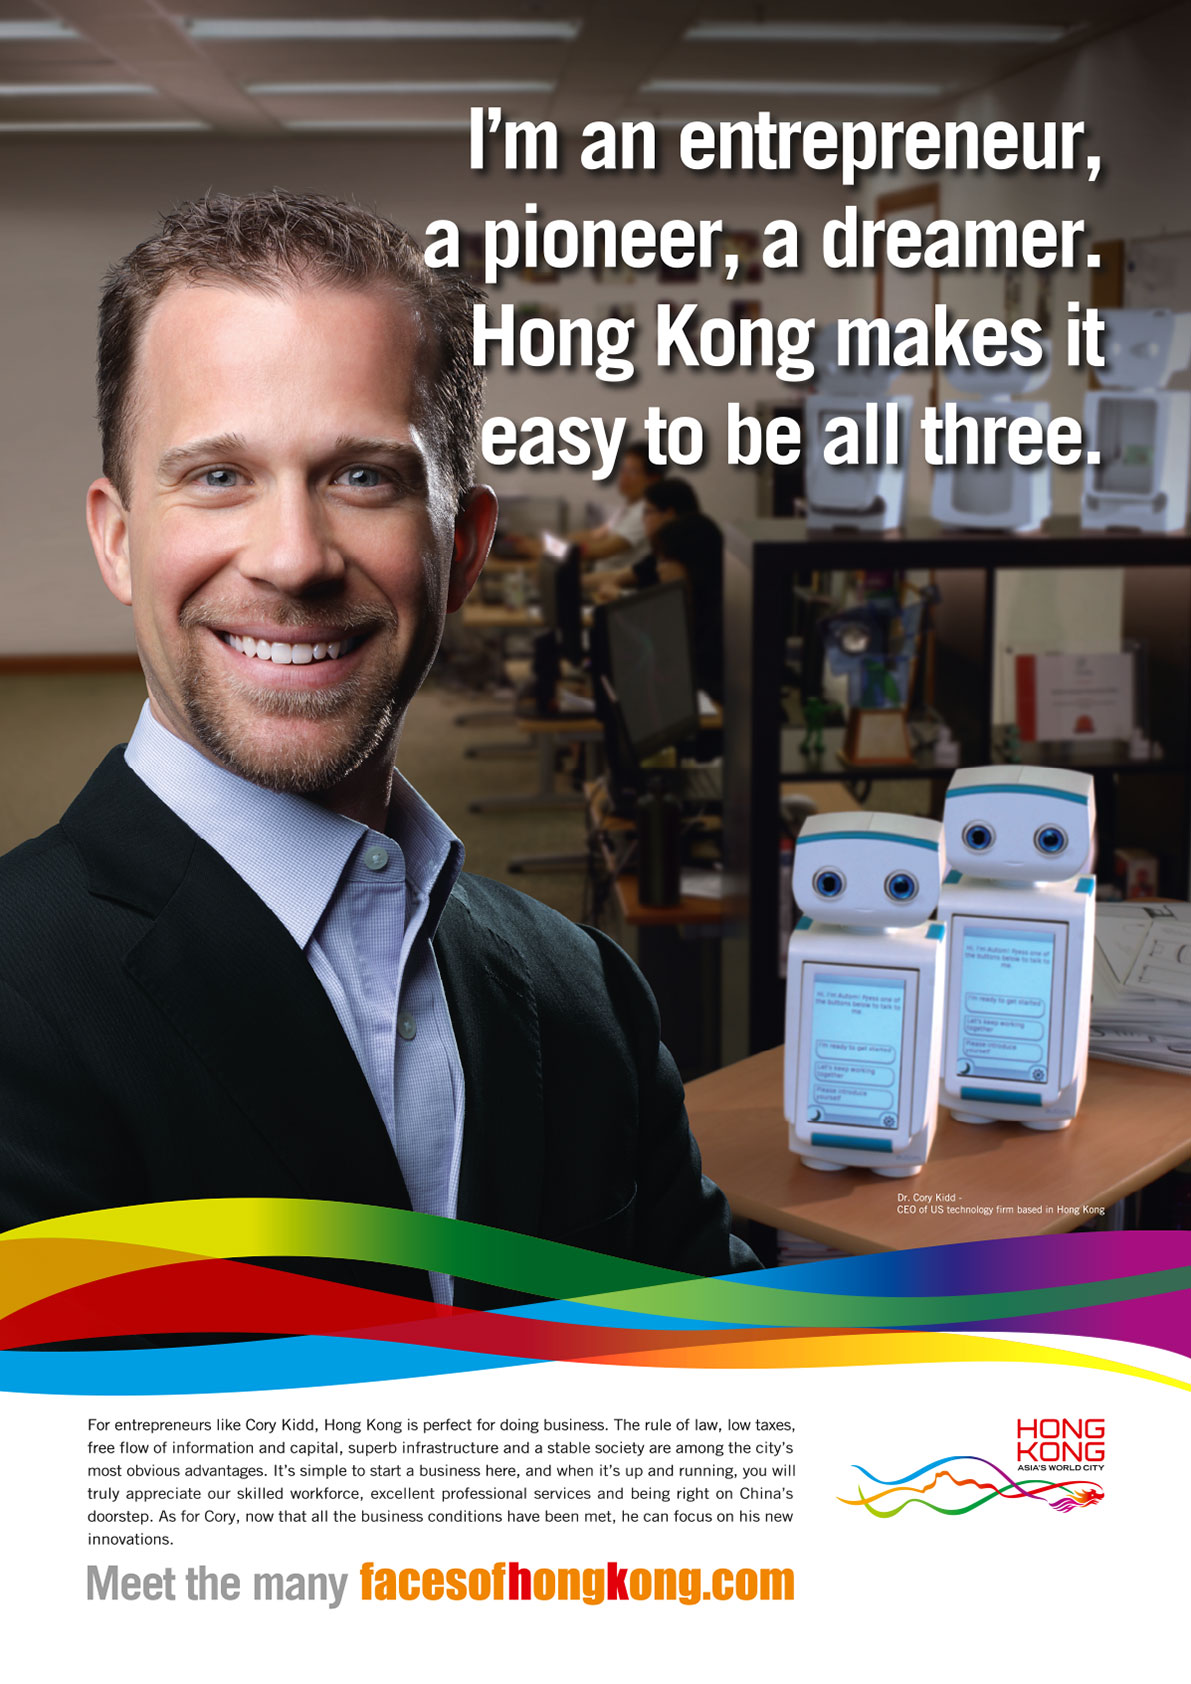 Faces of Hong Kong poster - members of AIESEC